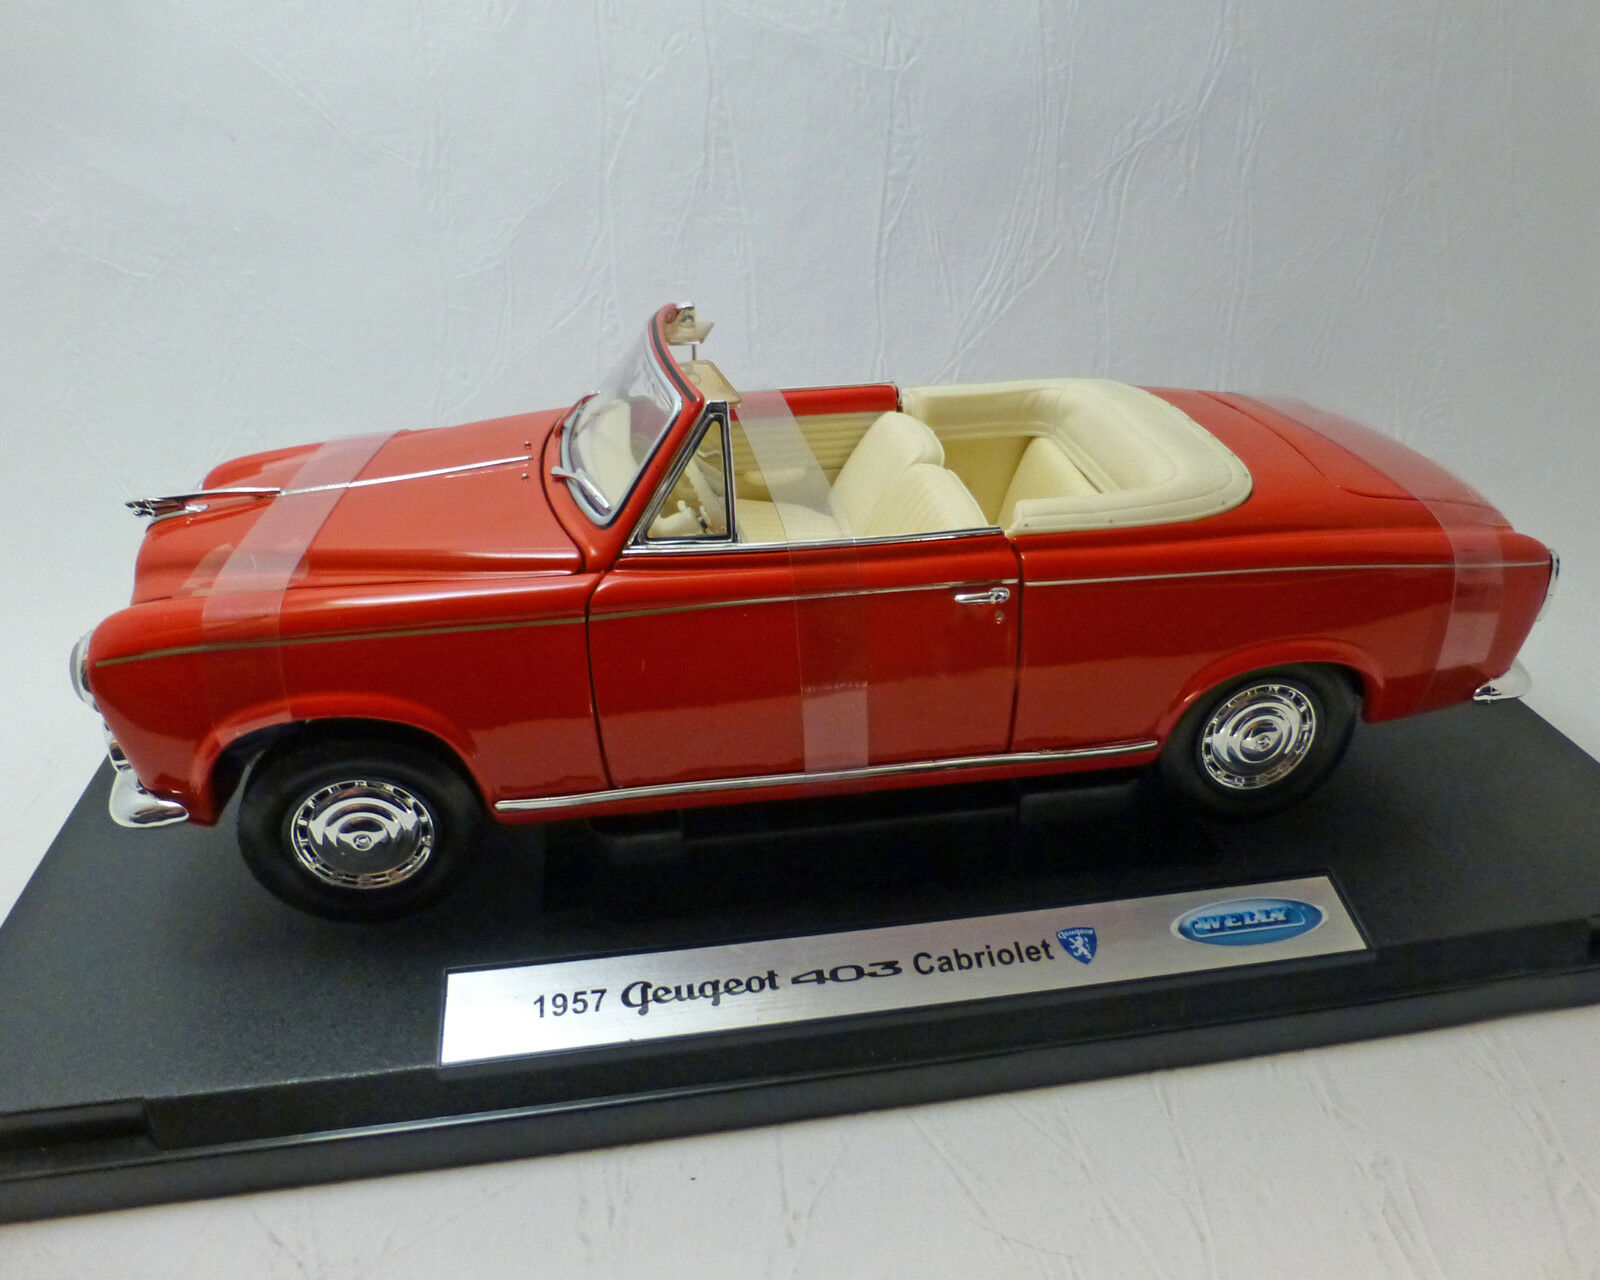 Peugeot 403 cabriolet, rojo, 1 18 - WELLY